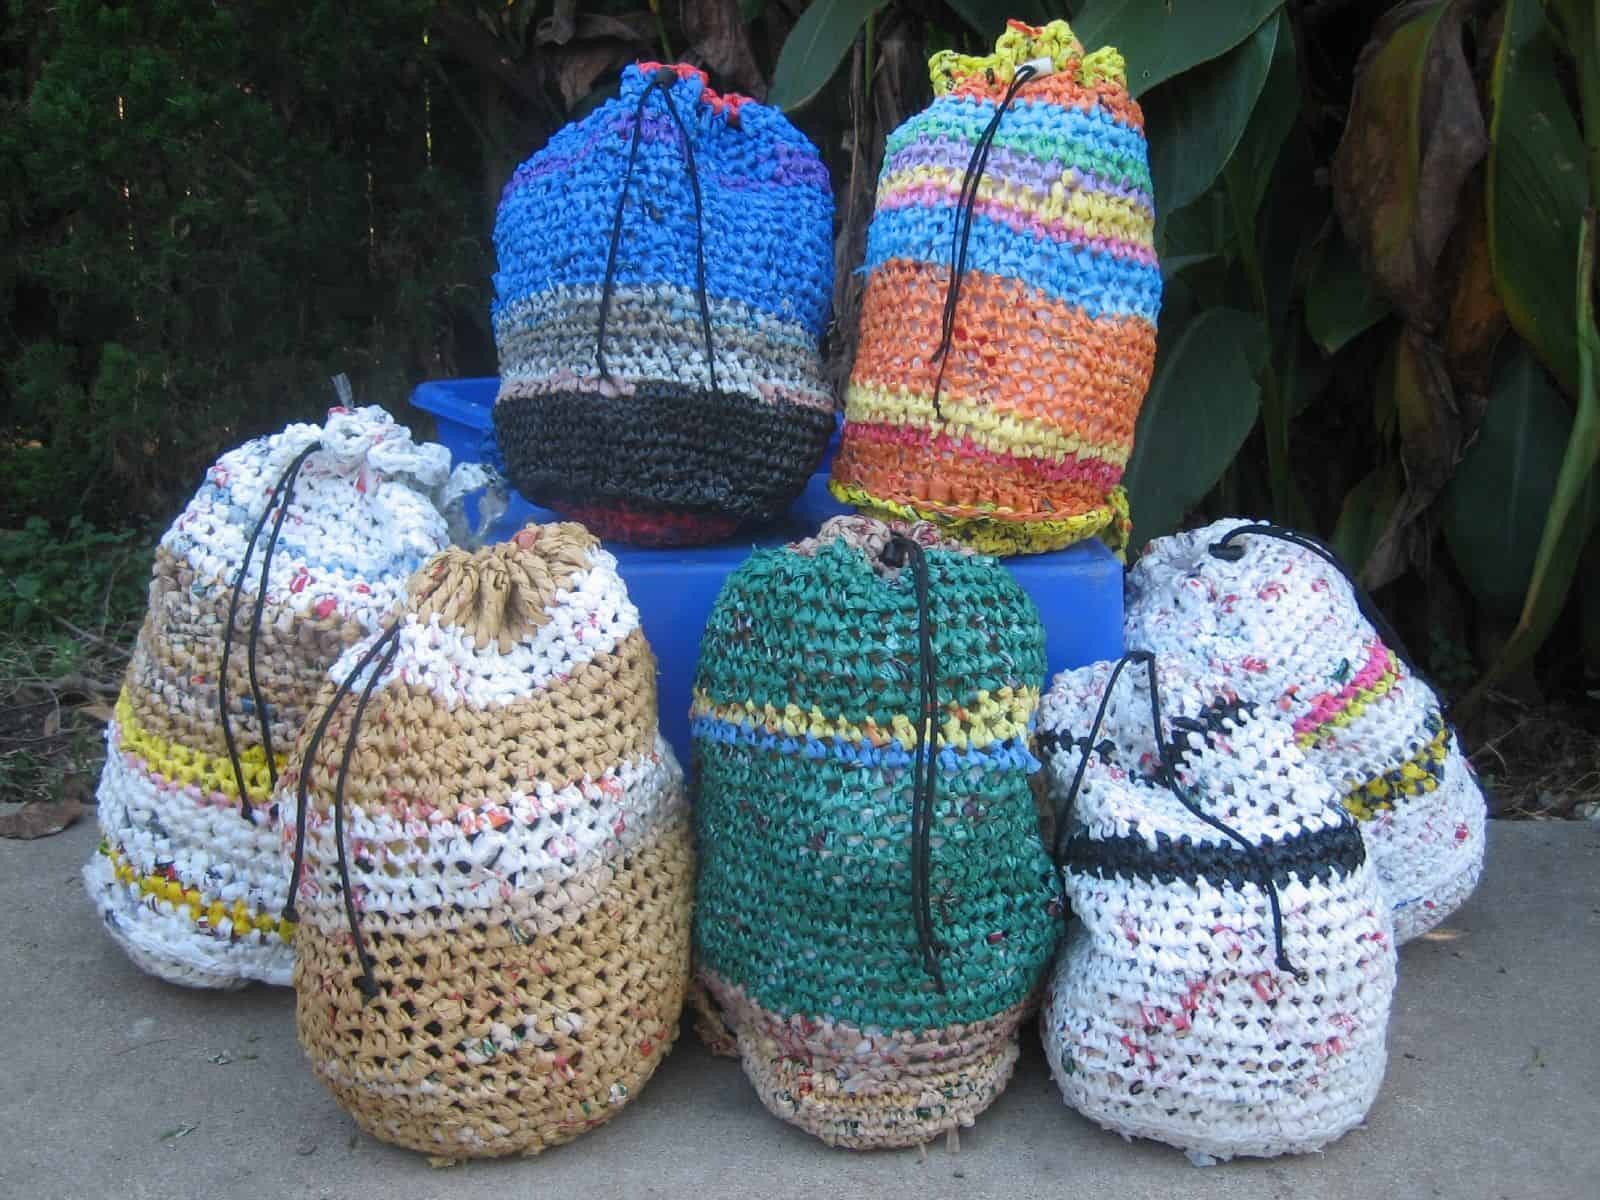 Drawstring top plarn bags